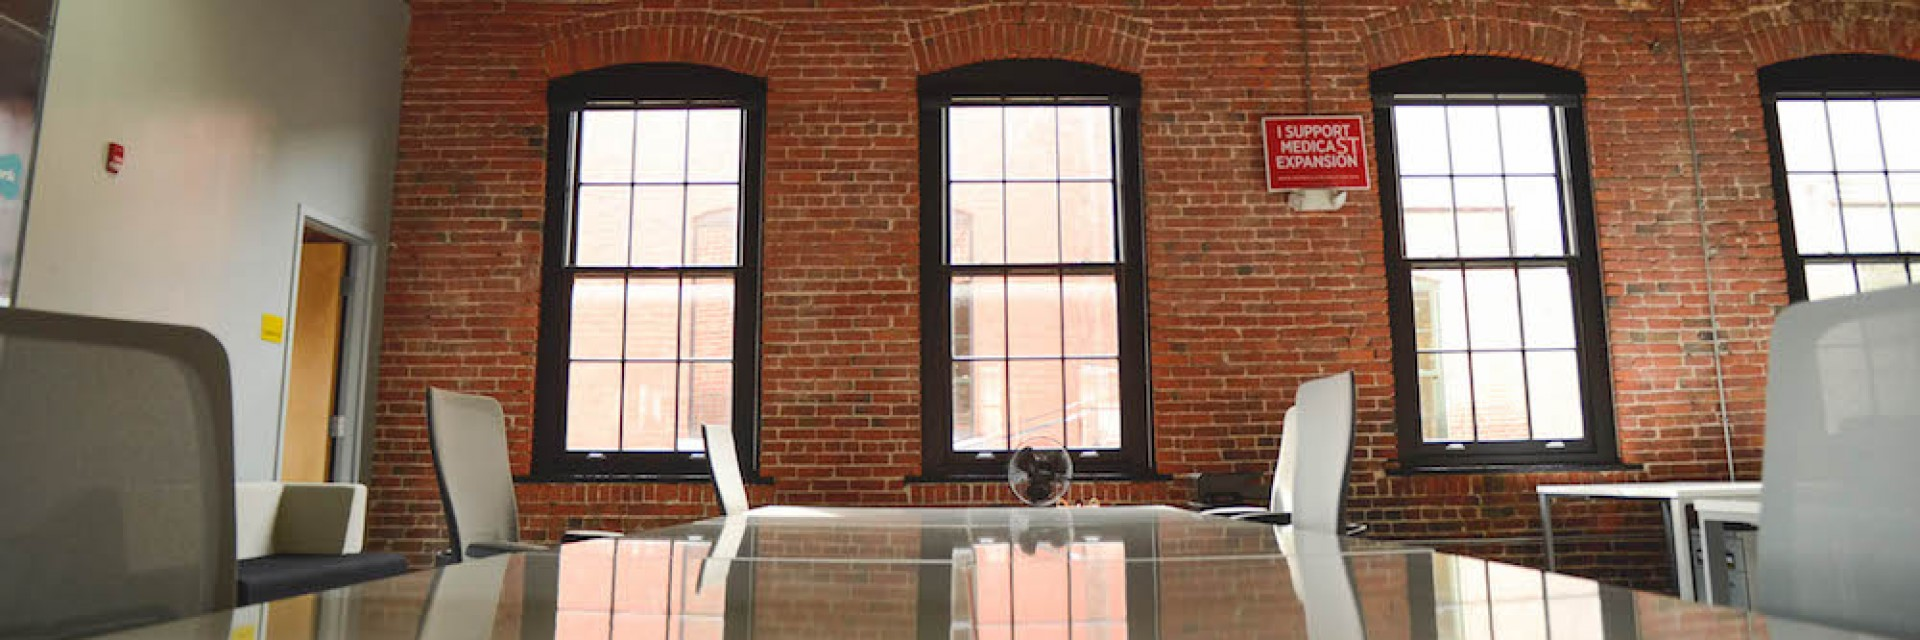 An exposed brick office as is typically occupied by startups in San Francisco and Brooklyn. This image depicts an empty conference room with a table and chairs prior to a meeting